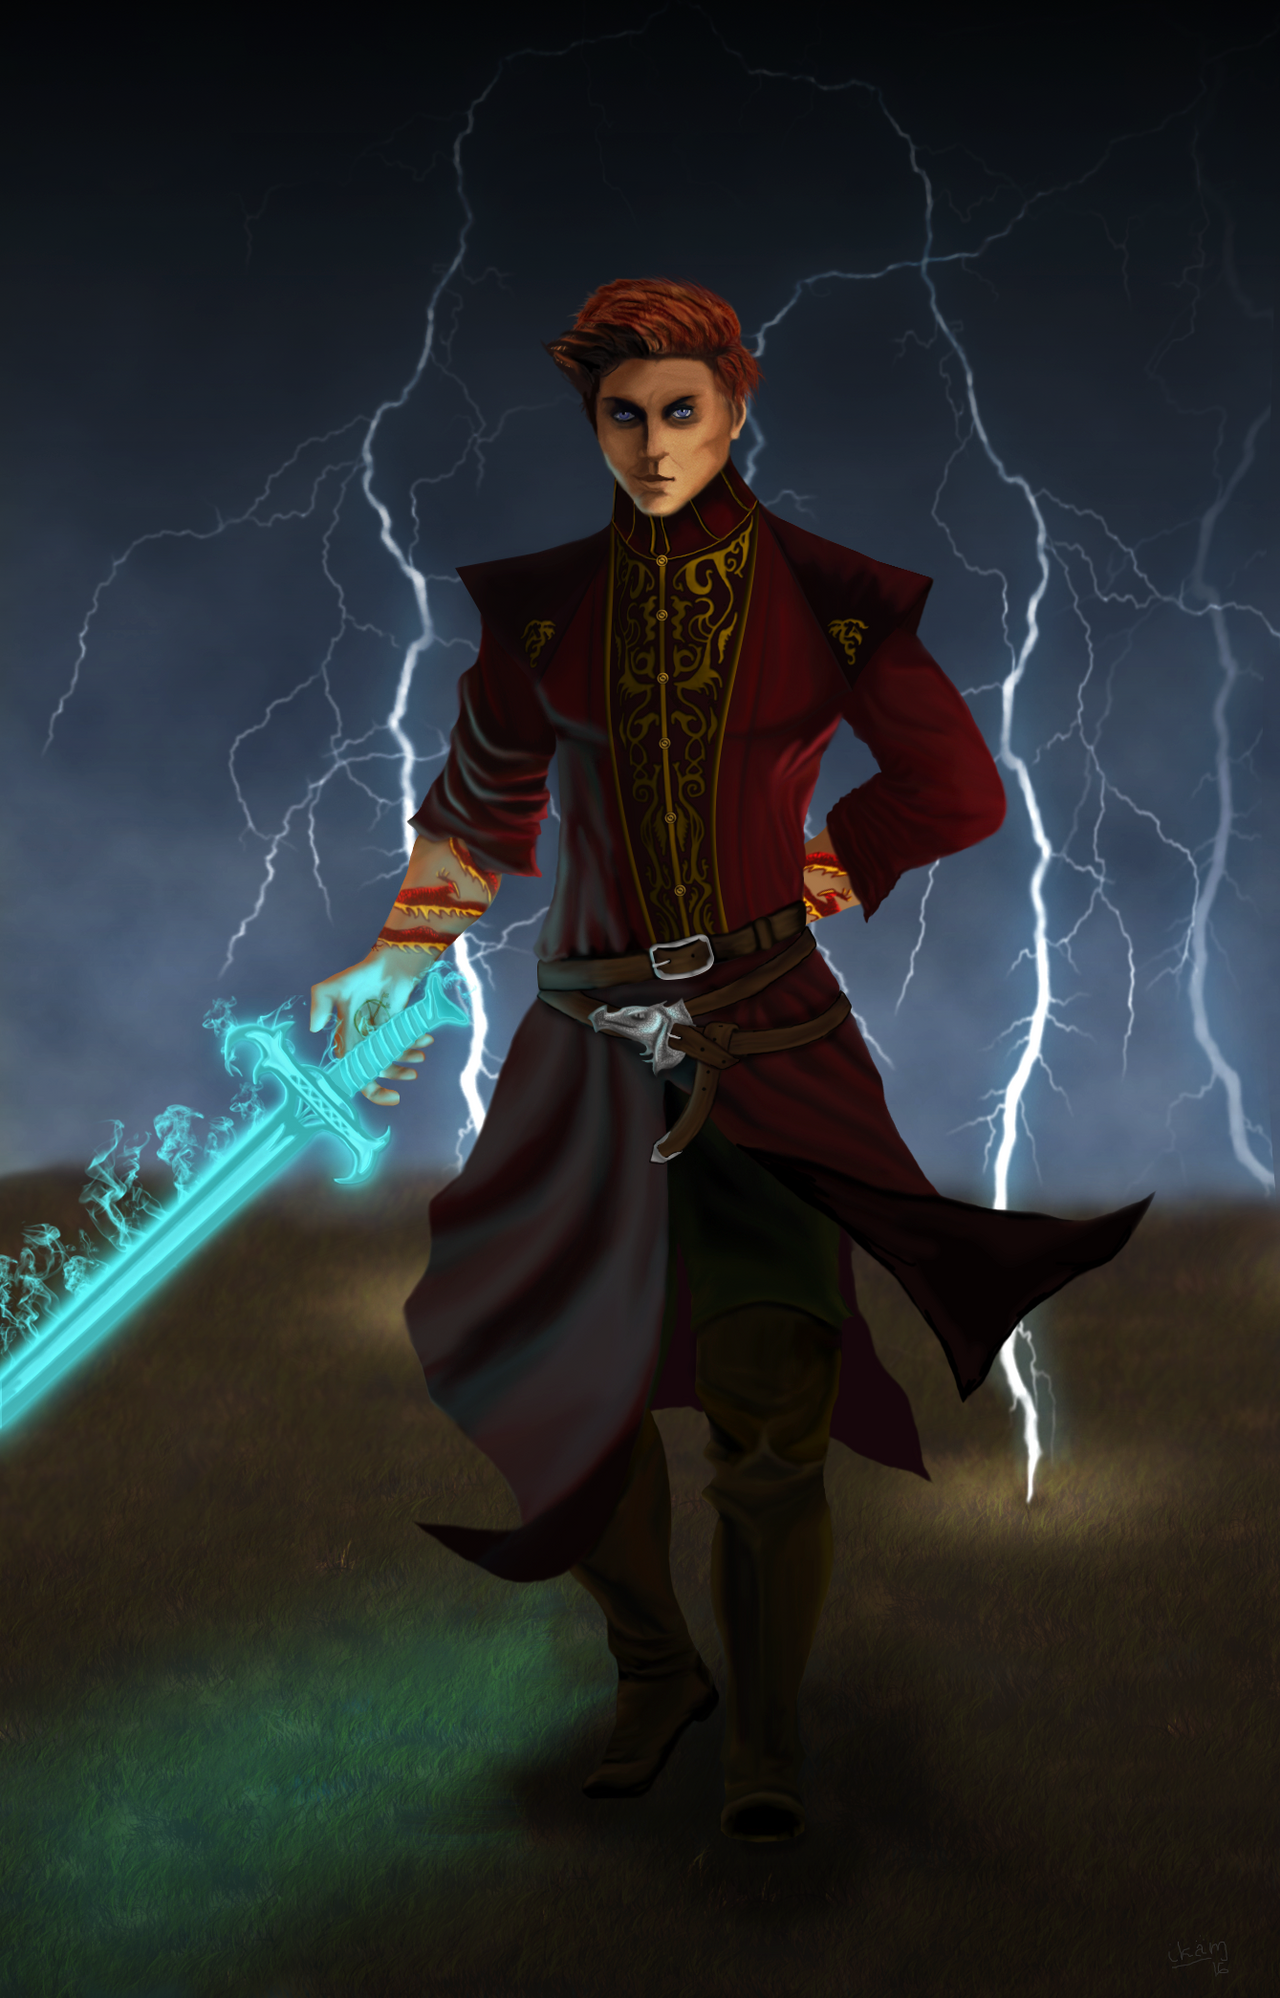 Rand al'Thor by ikammya on DeviantArt